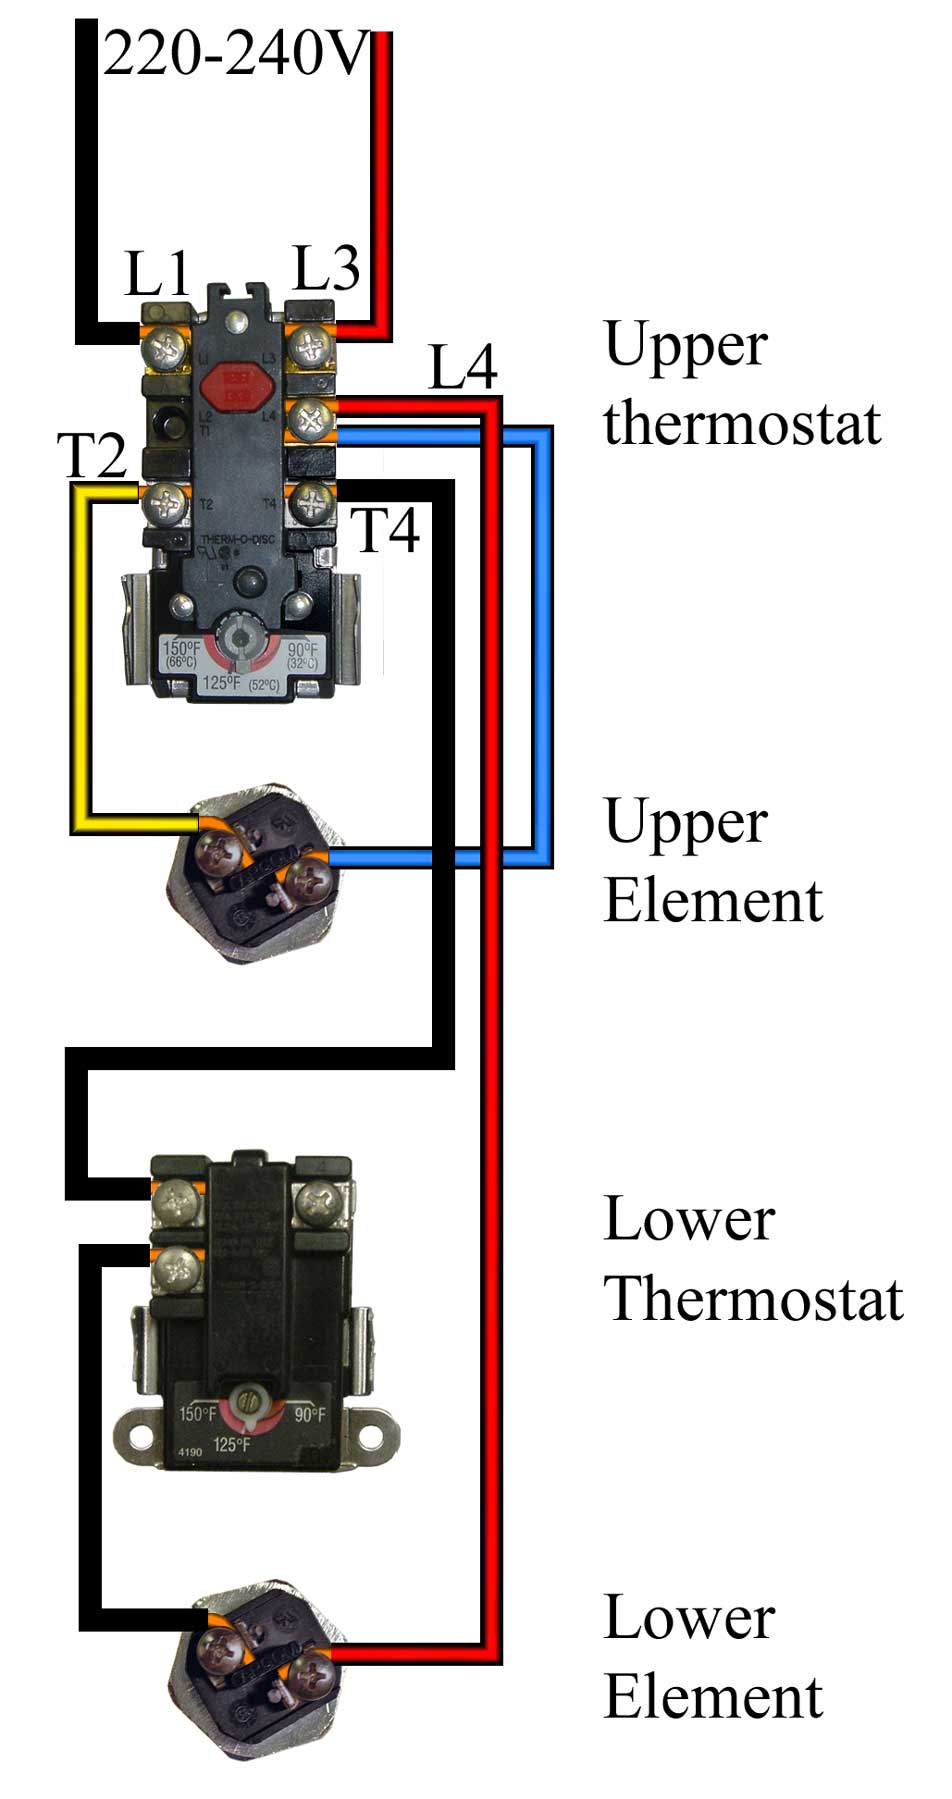 How to wire water heater for 120 Volts Heating Wiring Schematic on motor schematics, electrical schematics, engineering schematics, electronics schematics, transformer schematics, ford diagrams schematics, computer schematics, ignition schematics, plumbing schematics, ductwork schematics, design schematics, generator schematics, circuit schematics, engine schematics, wire schematics, amplifier schematics, piping schematics, tube amp schematics, ecu schematics, transmission schematics,